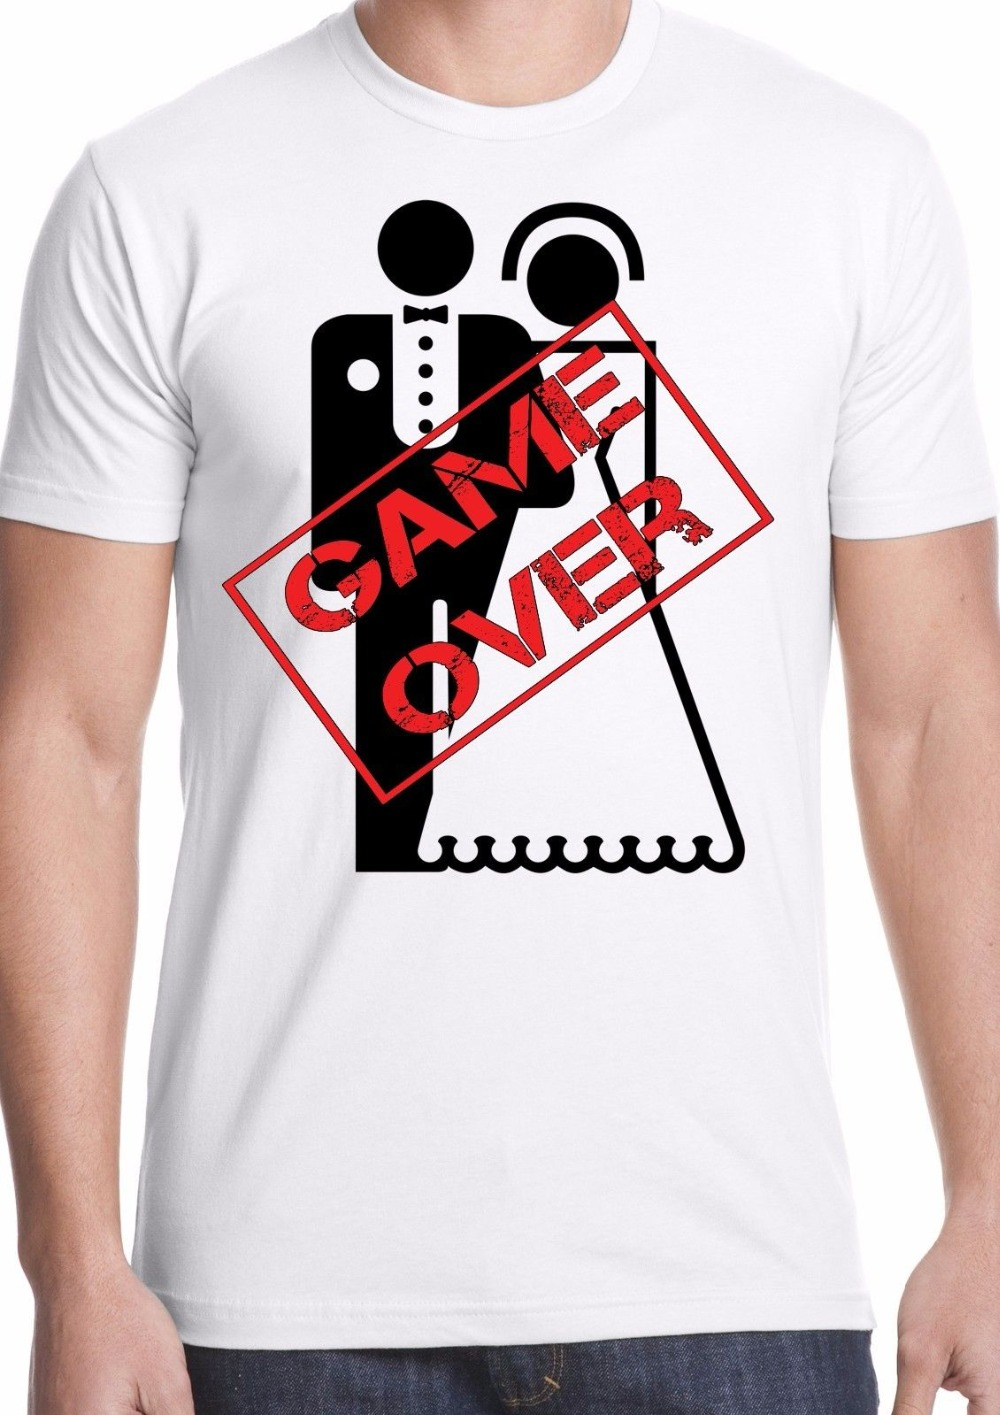 Summer 2018 New game over t-shirt stag do marriage gift personalised funny humor wedding groom ! 100% Cotton Top Tees